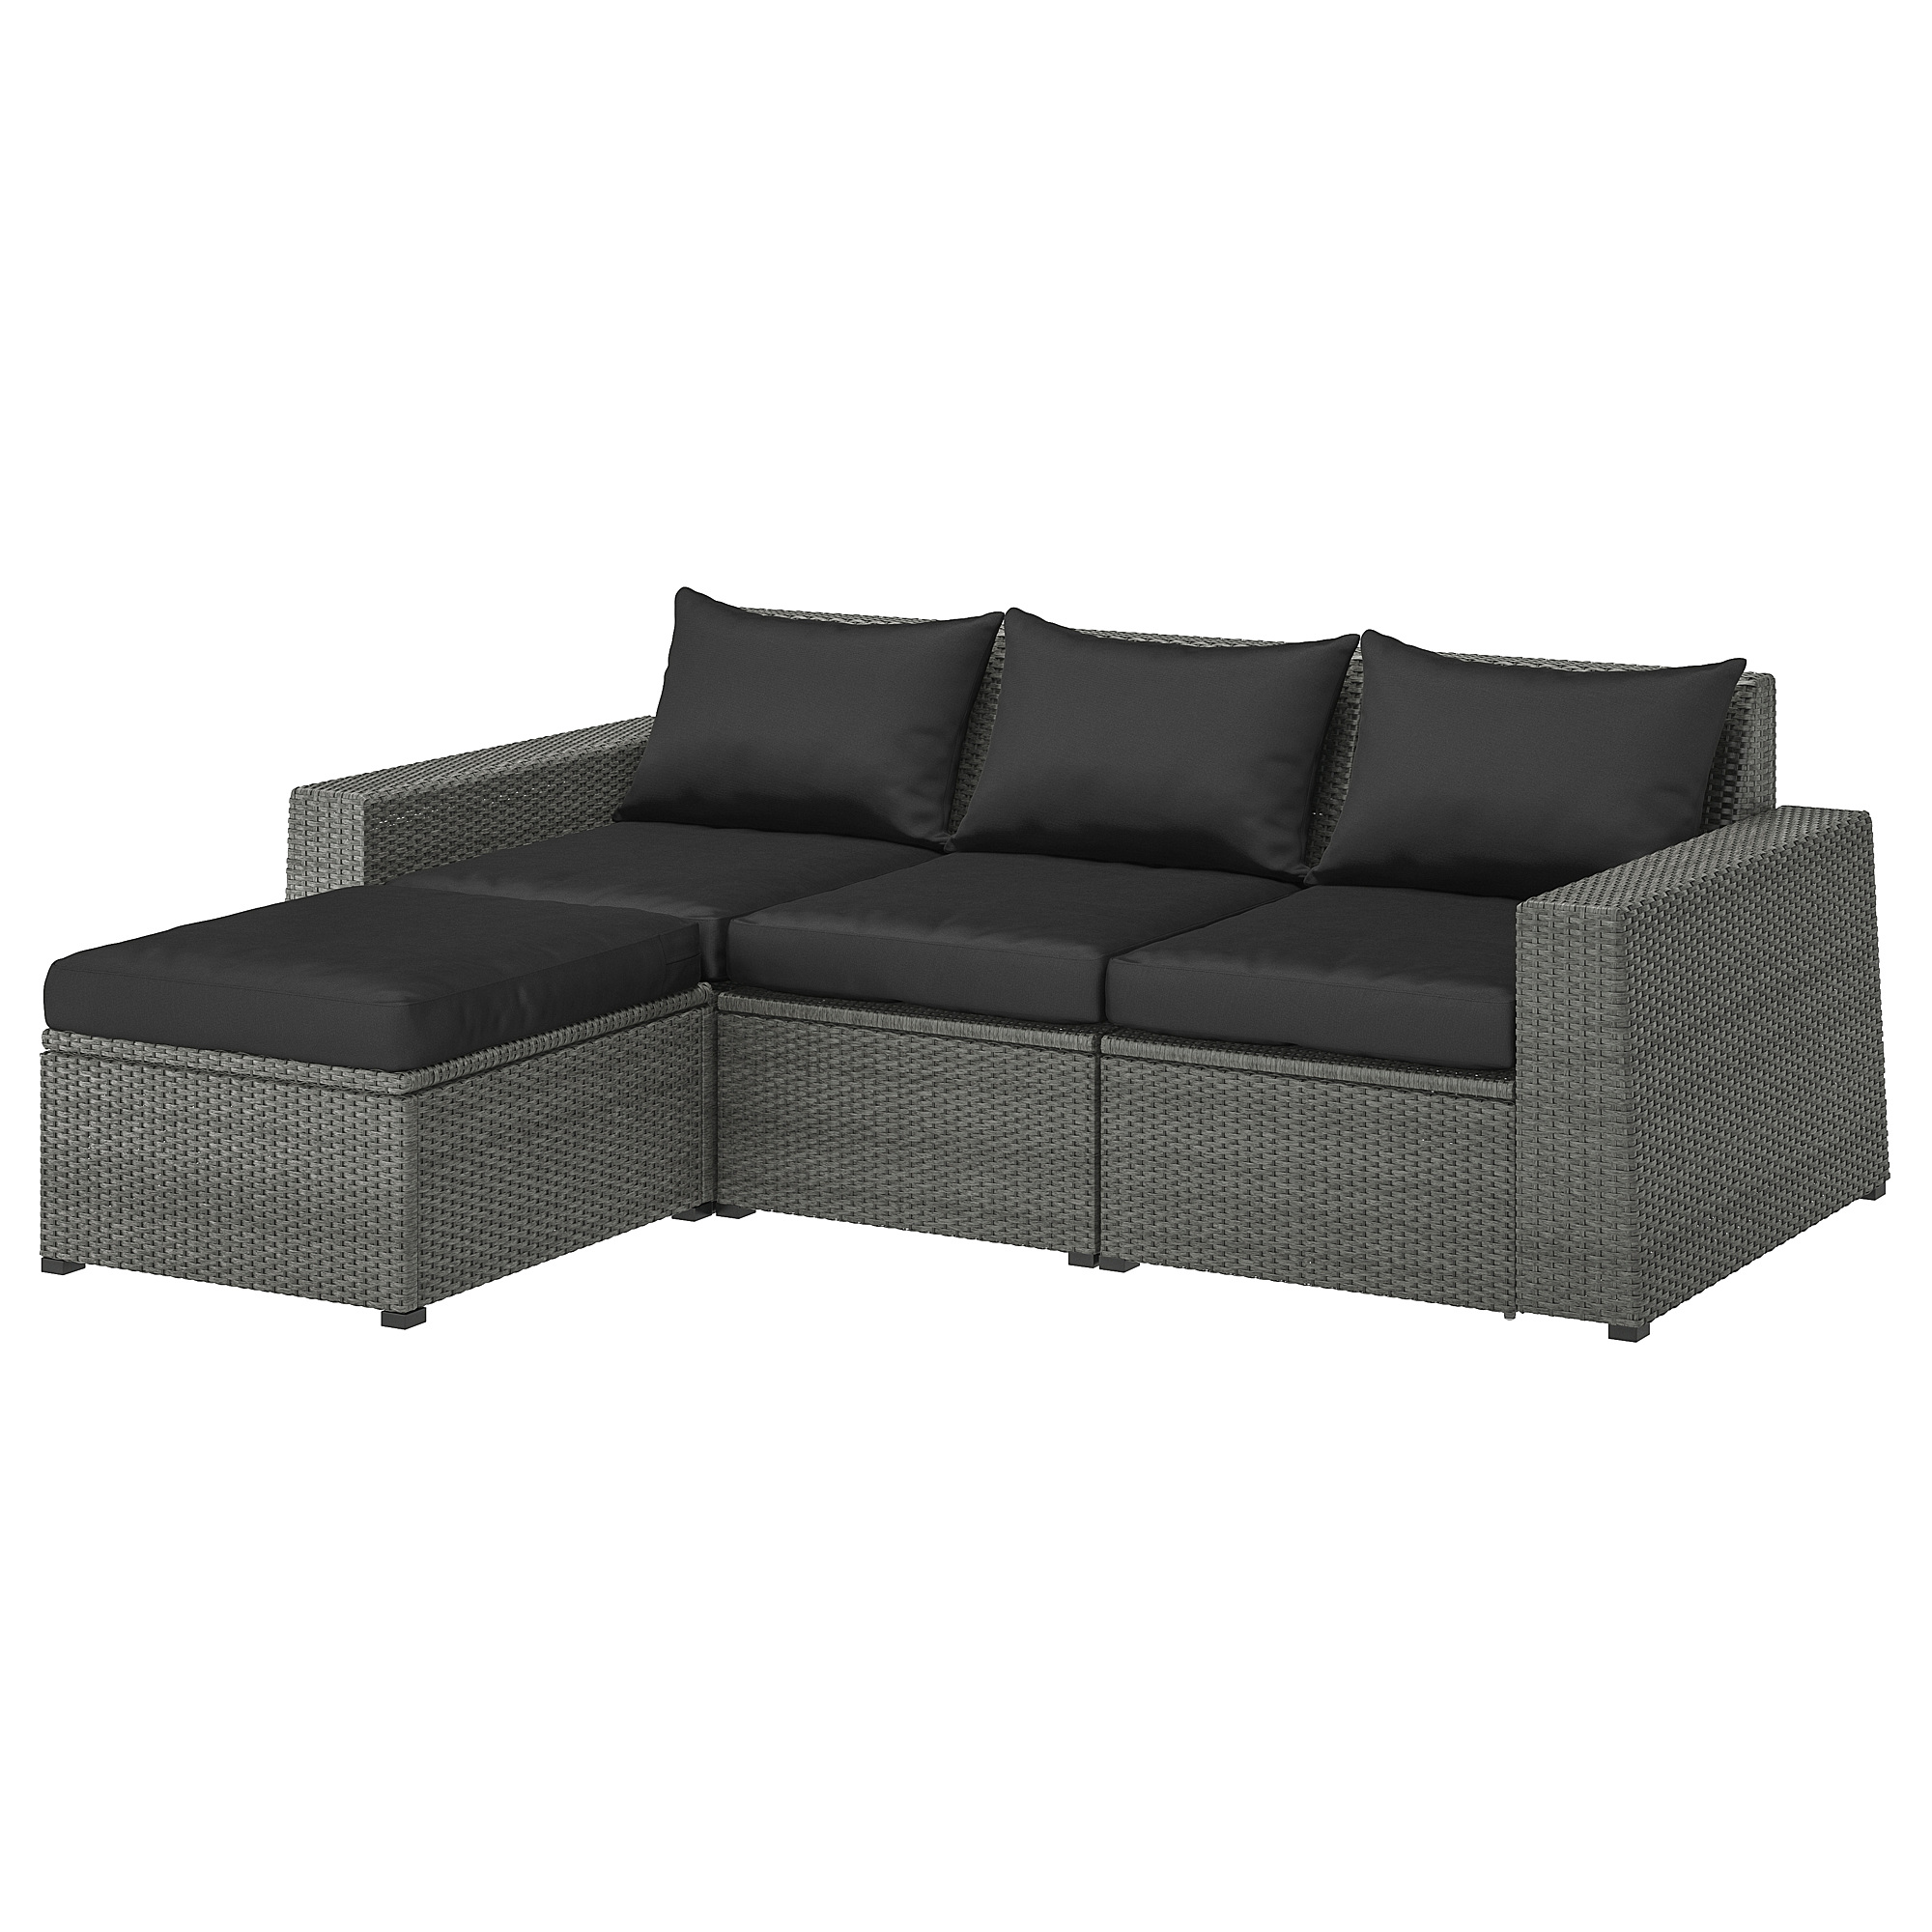 SOLLERÖN, 7-seat modular sofa, outdoor, with footstool dark grey/Hållö black